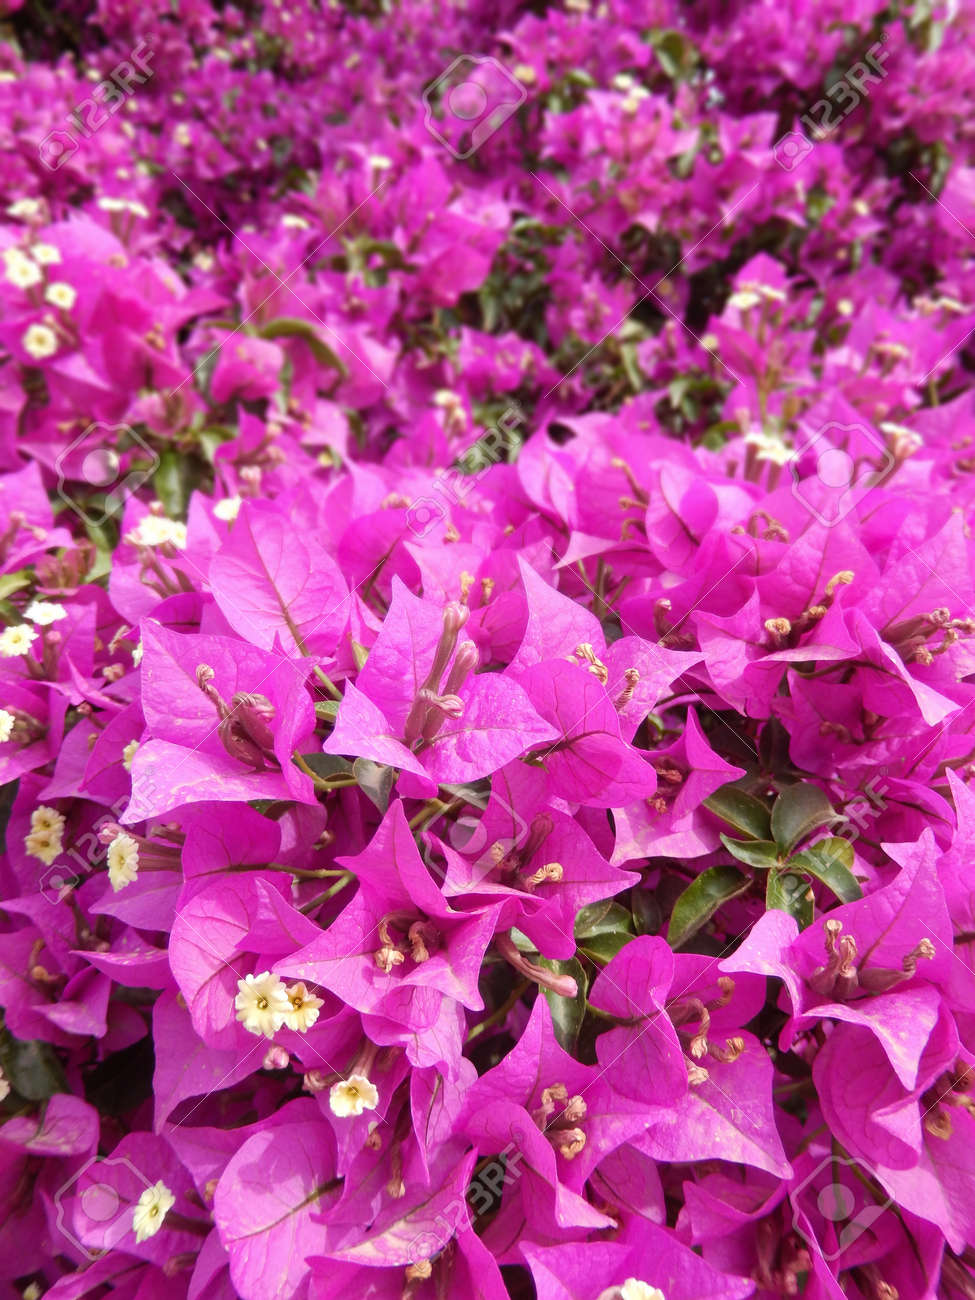 Bougainvillea Bush With Blooming Hot Pink Flowers Stock Photo